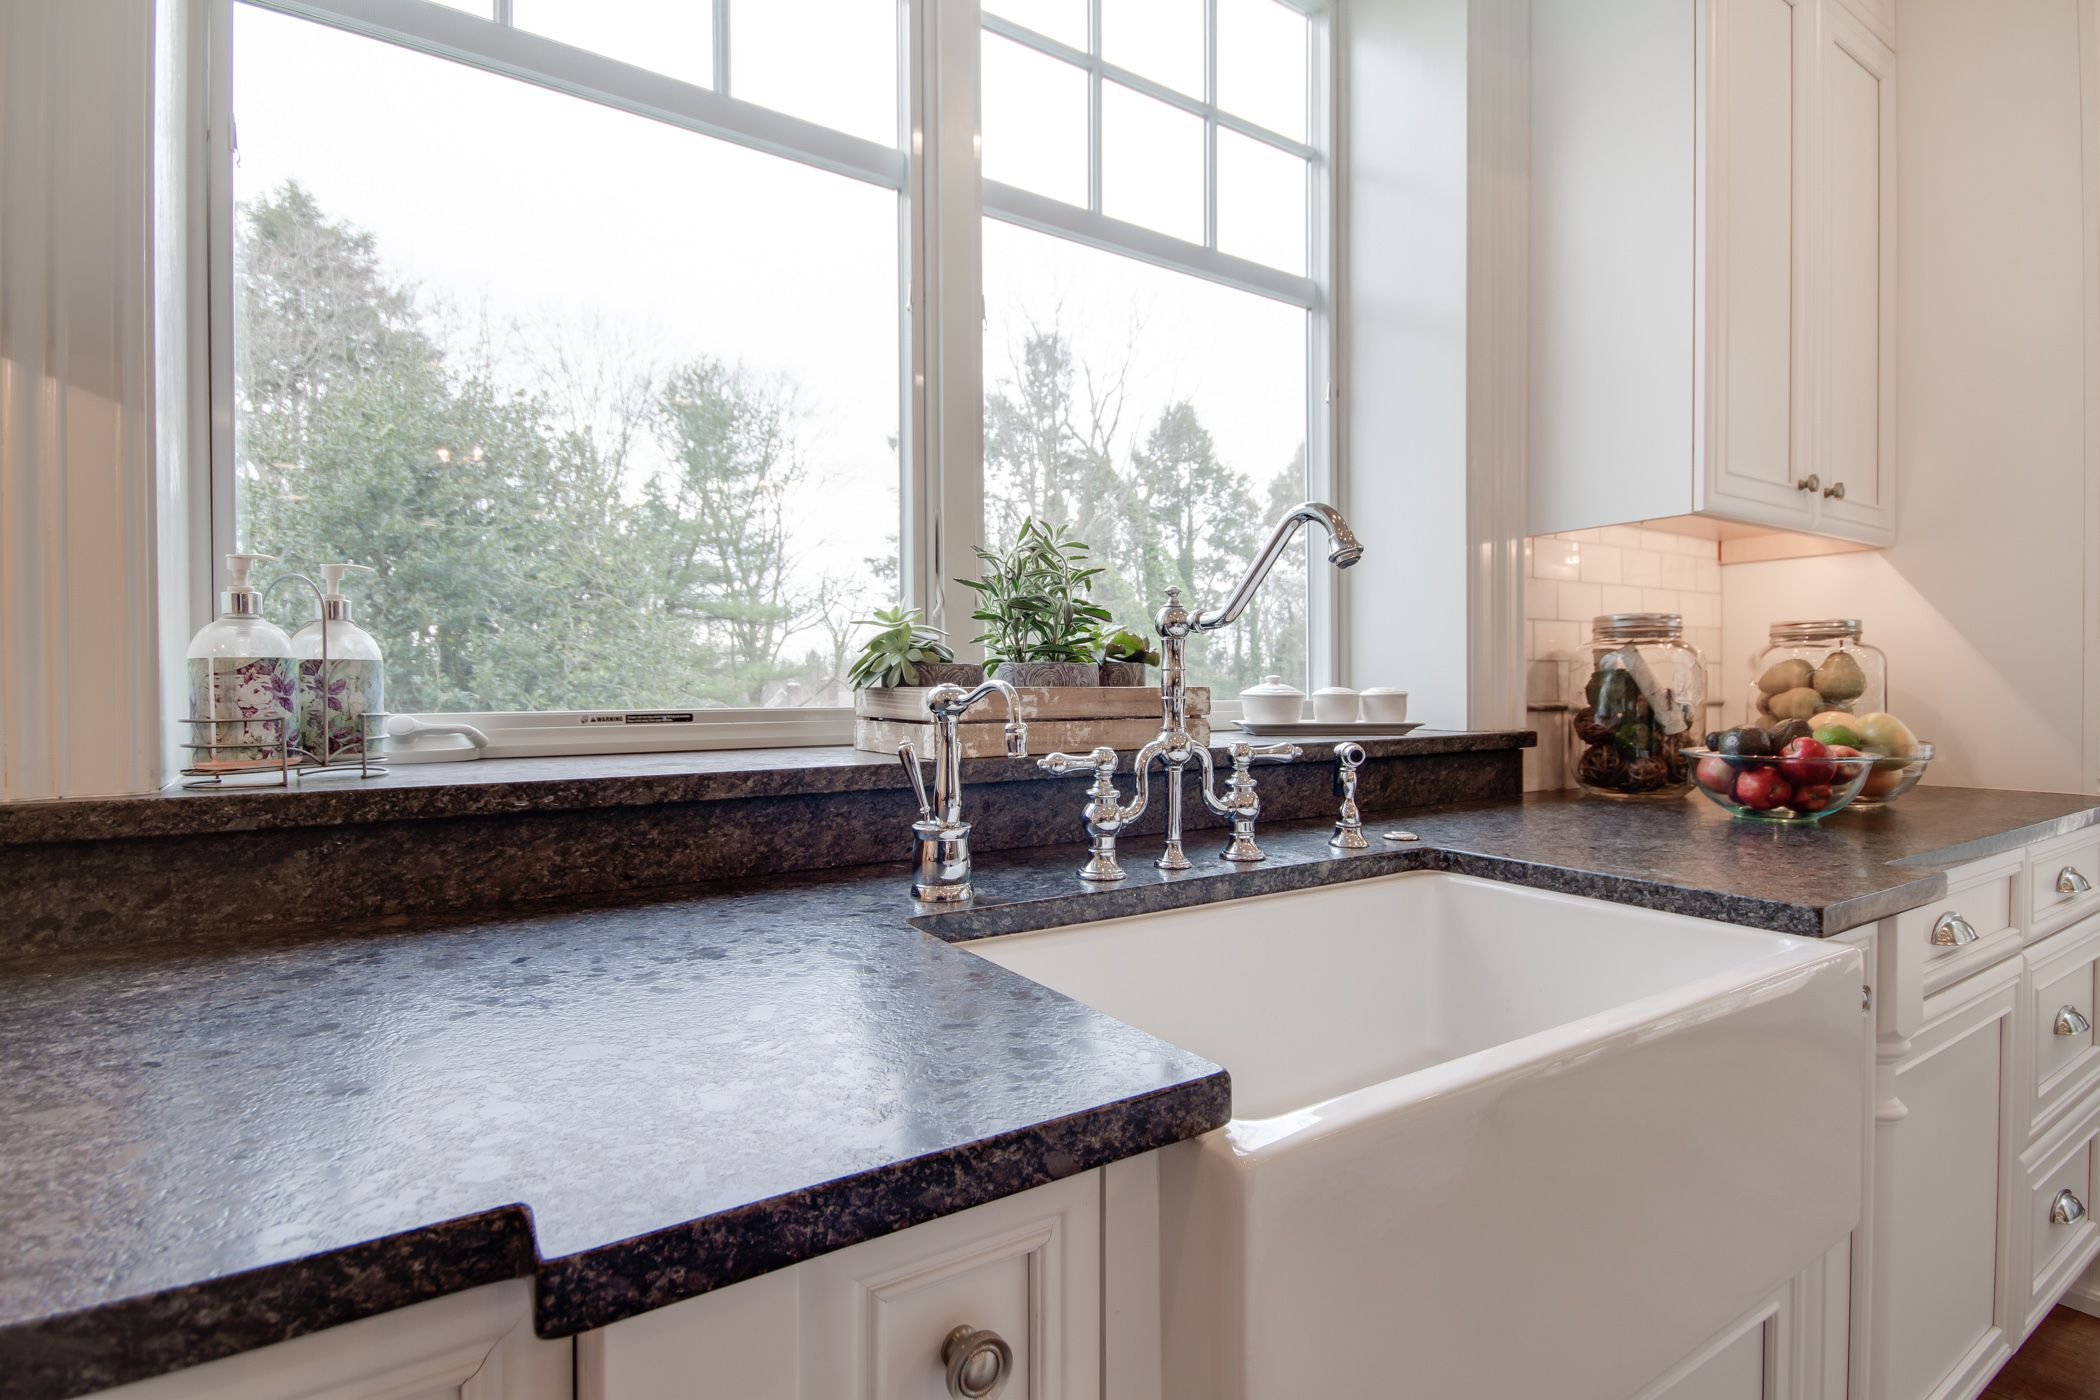 Discount Granite Countertops Nj Bright White Kitchen With Silver Pearl Leathered Granite